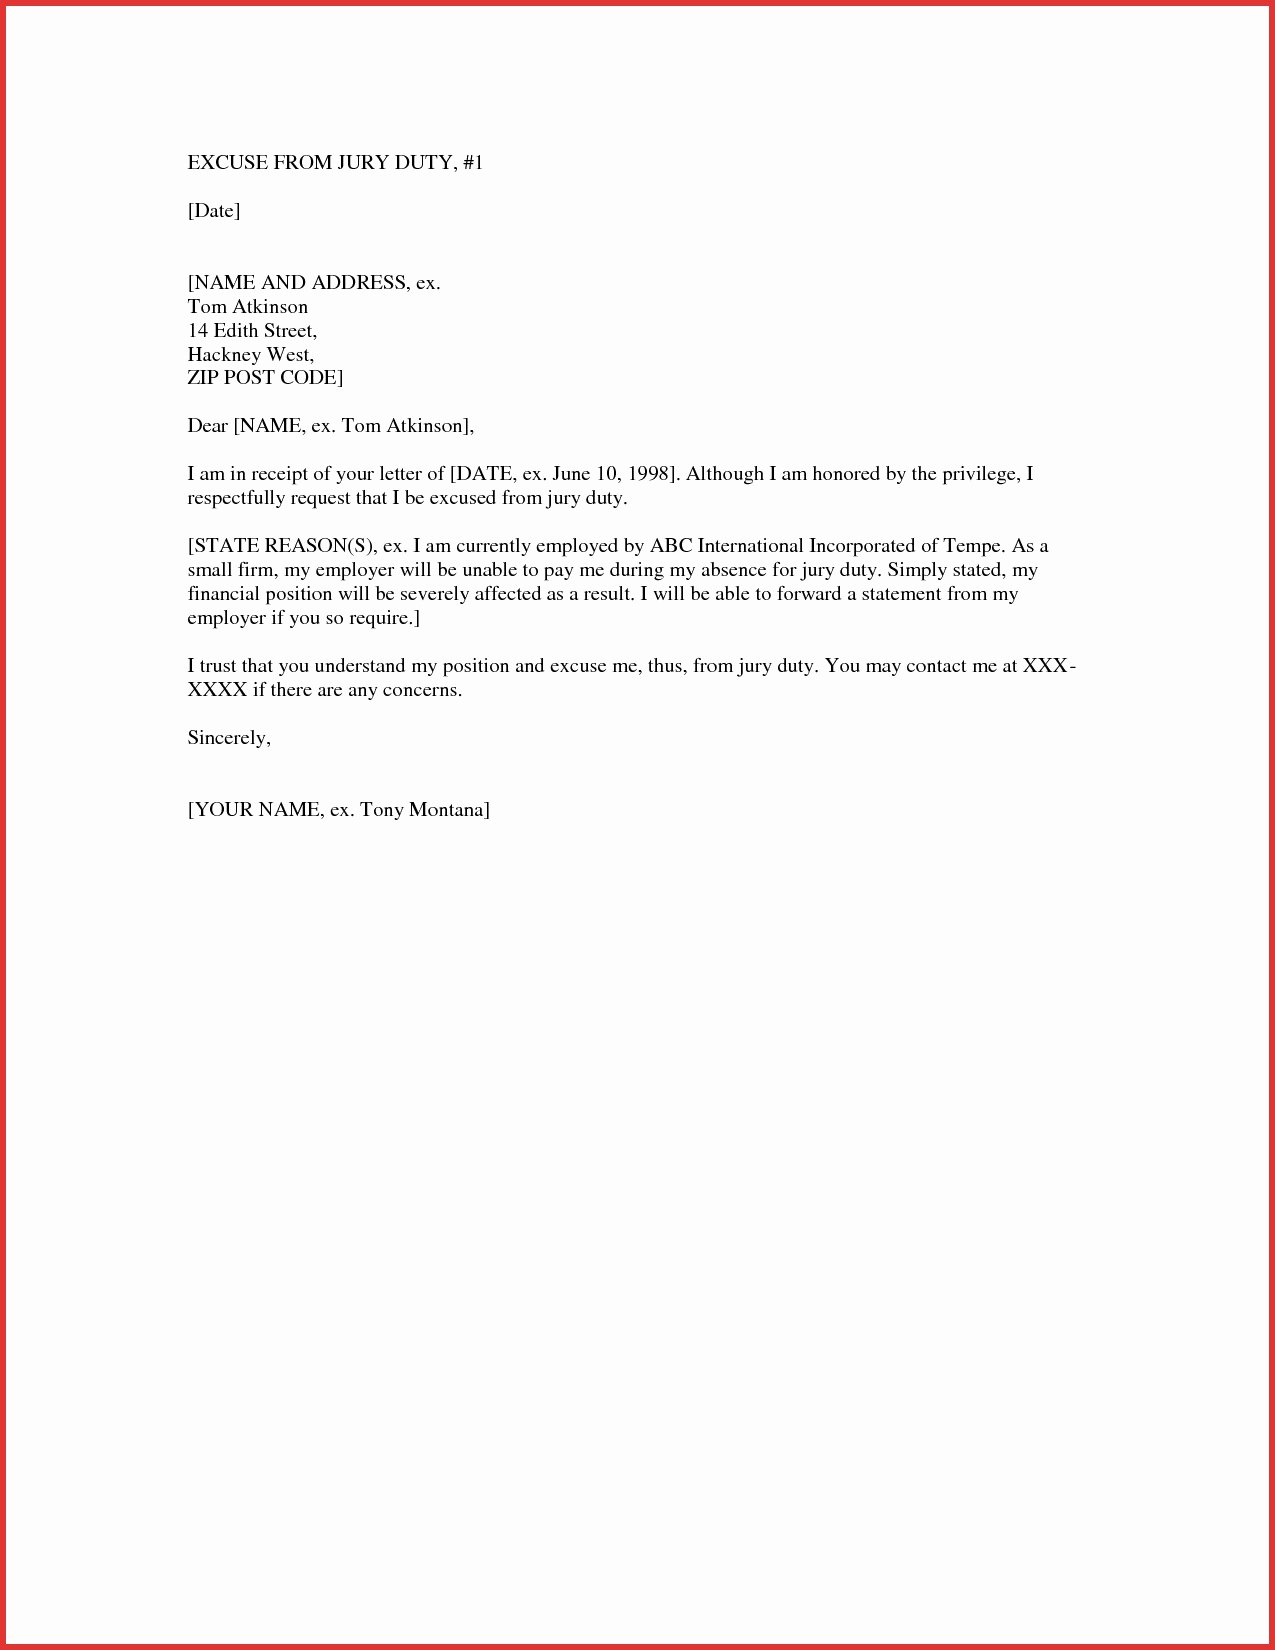 Self Employed Letter Template Beautiful 9 Example Of Jury Duty Excuse Letter